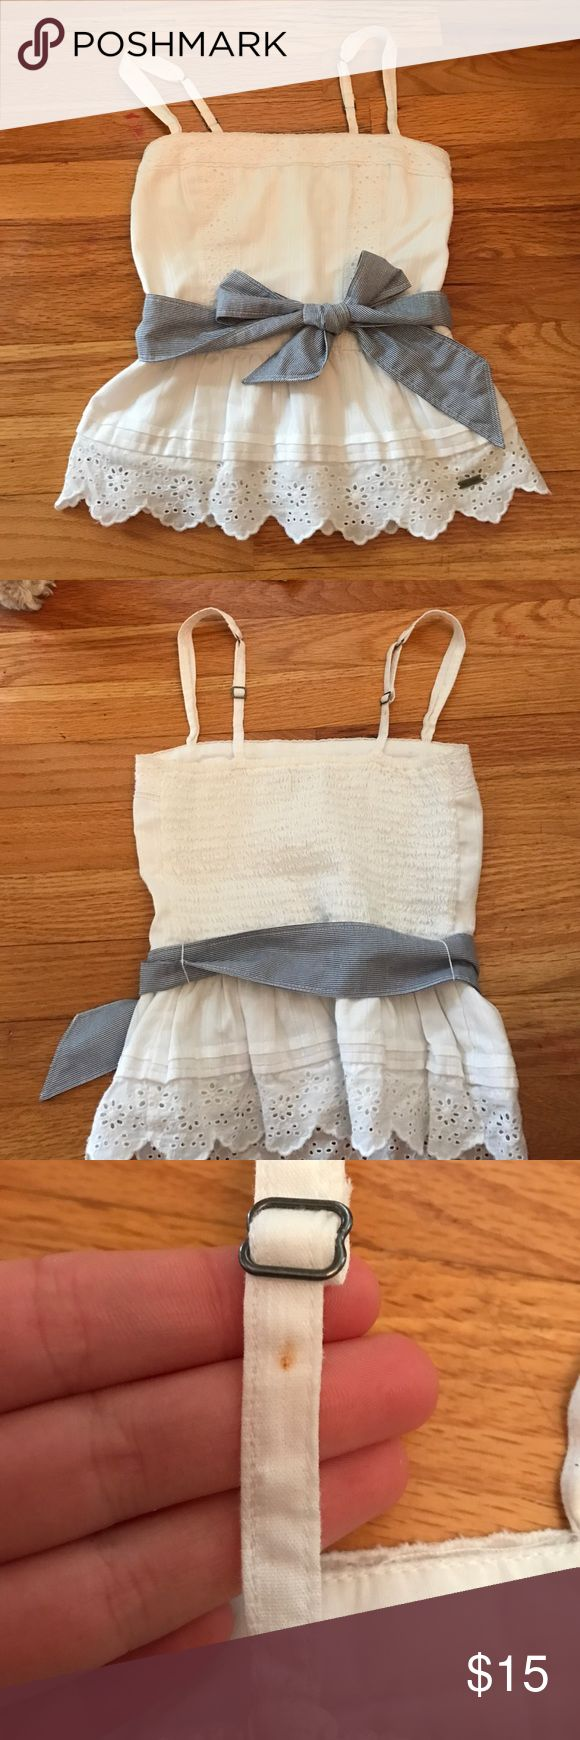 Abercrombie kids tank size medium Cute Abercrombie kids girls white tank with blue and white striped bow. Size medium.  Small spot on the back of the strap that is barely noticeable and can be covered with the adjustable silver piece abercrombie kids Shirts & Tops Tank Tops